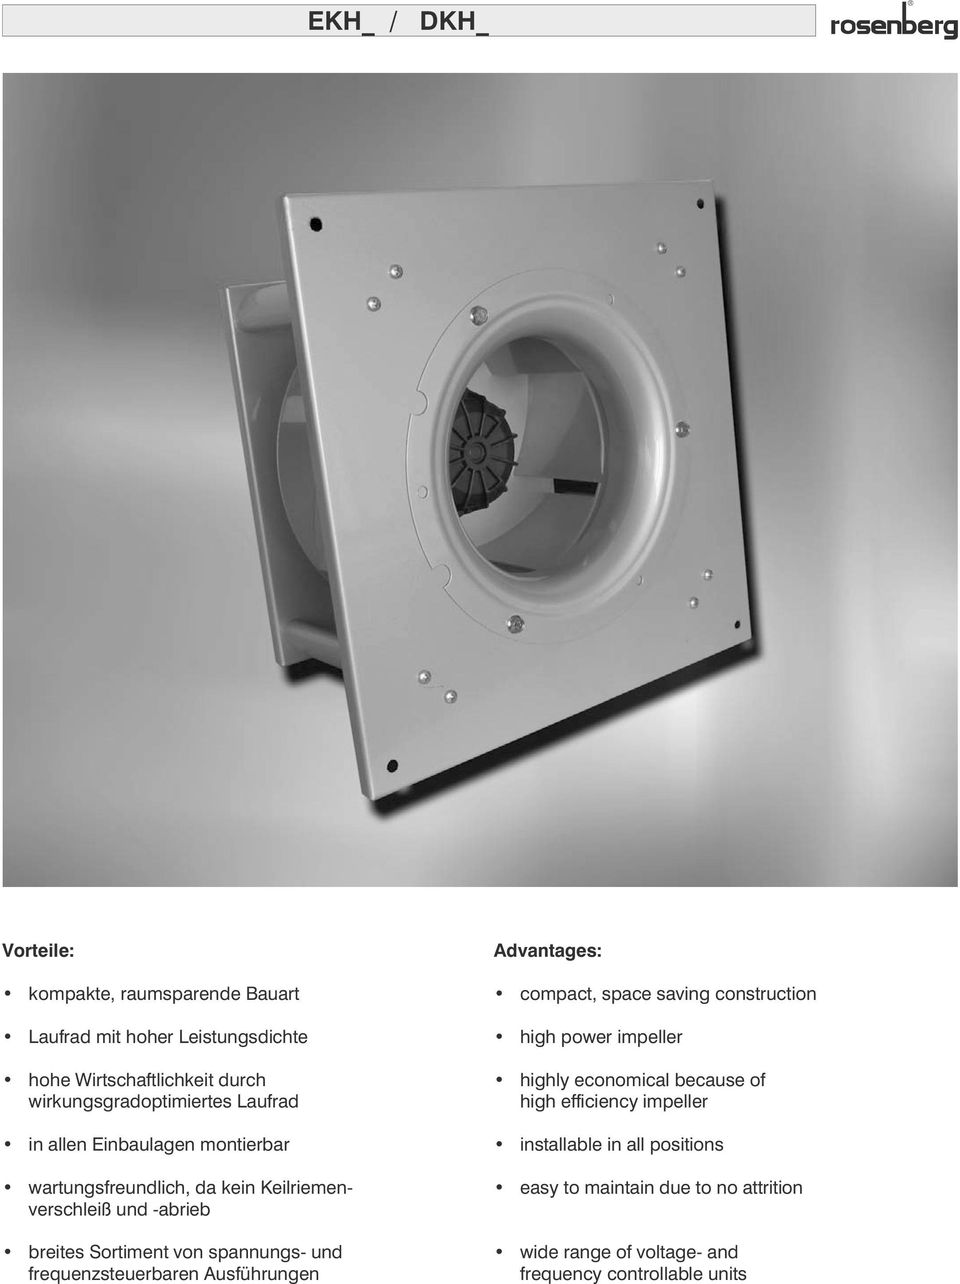 Sortimet vo spaugs- ud frequezsteuerbare usführuge dvatages: compact, space savig costructio high power impeller highly